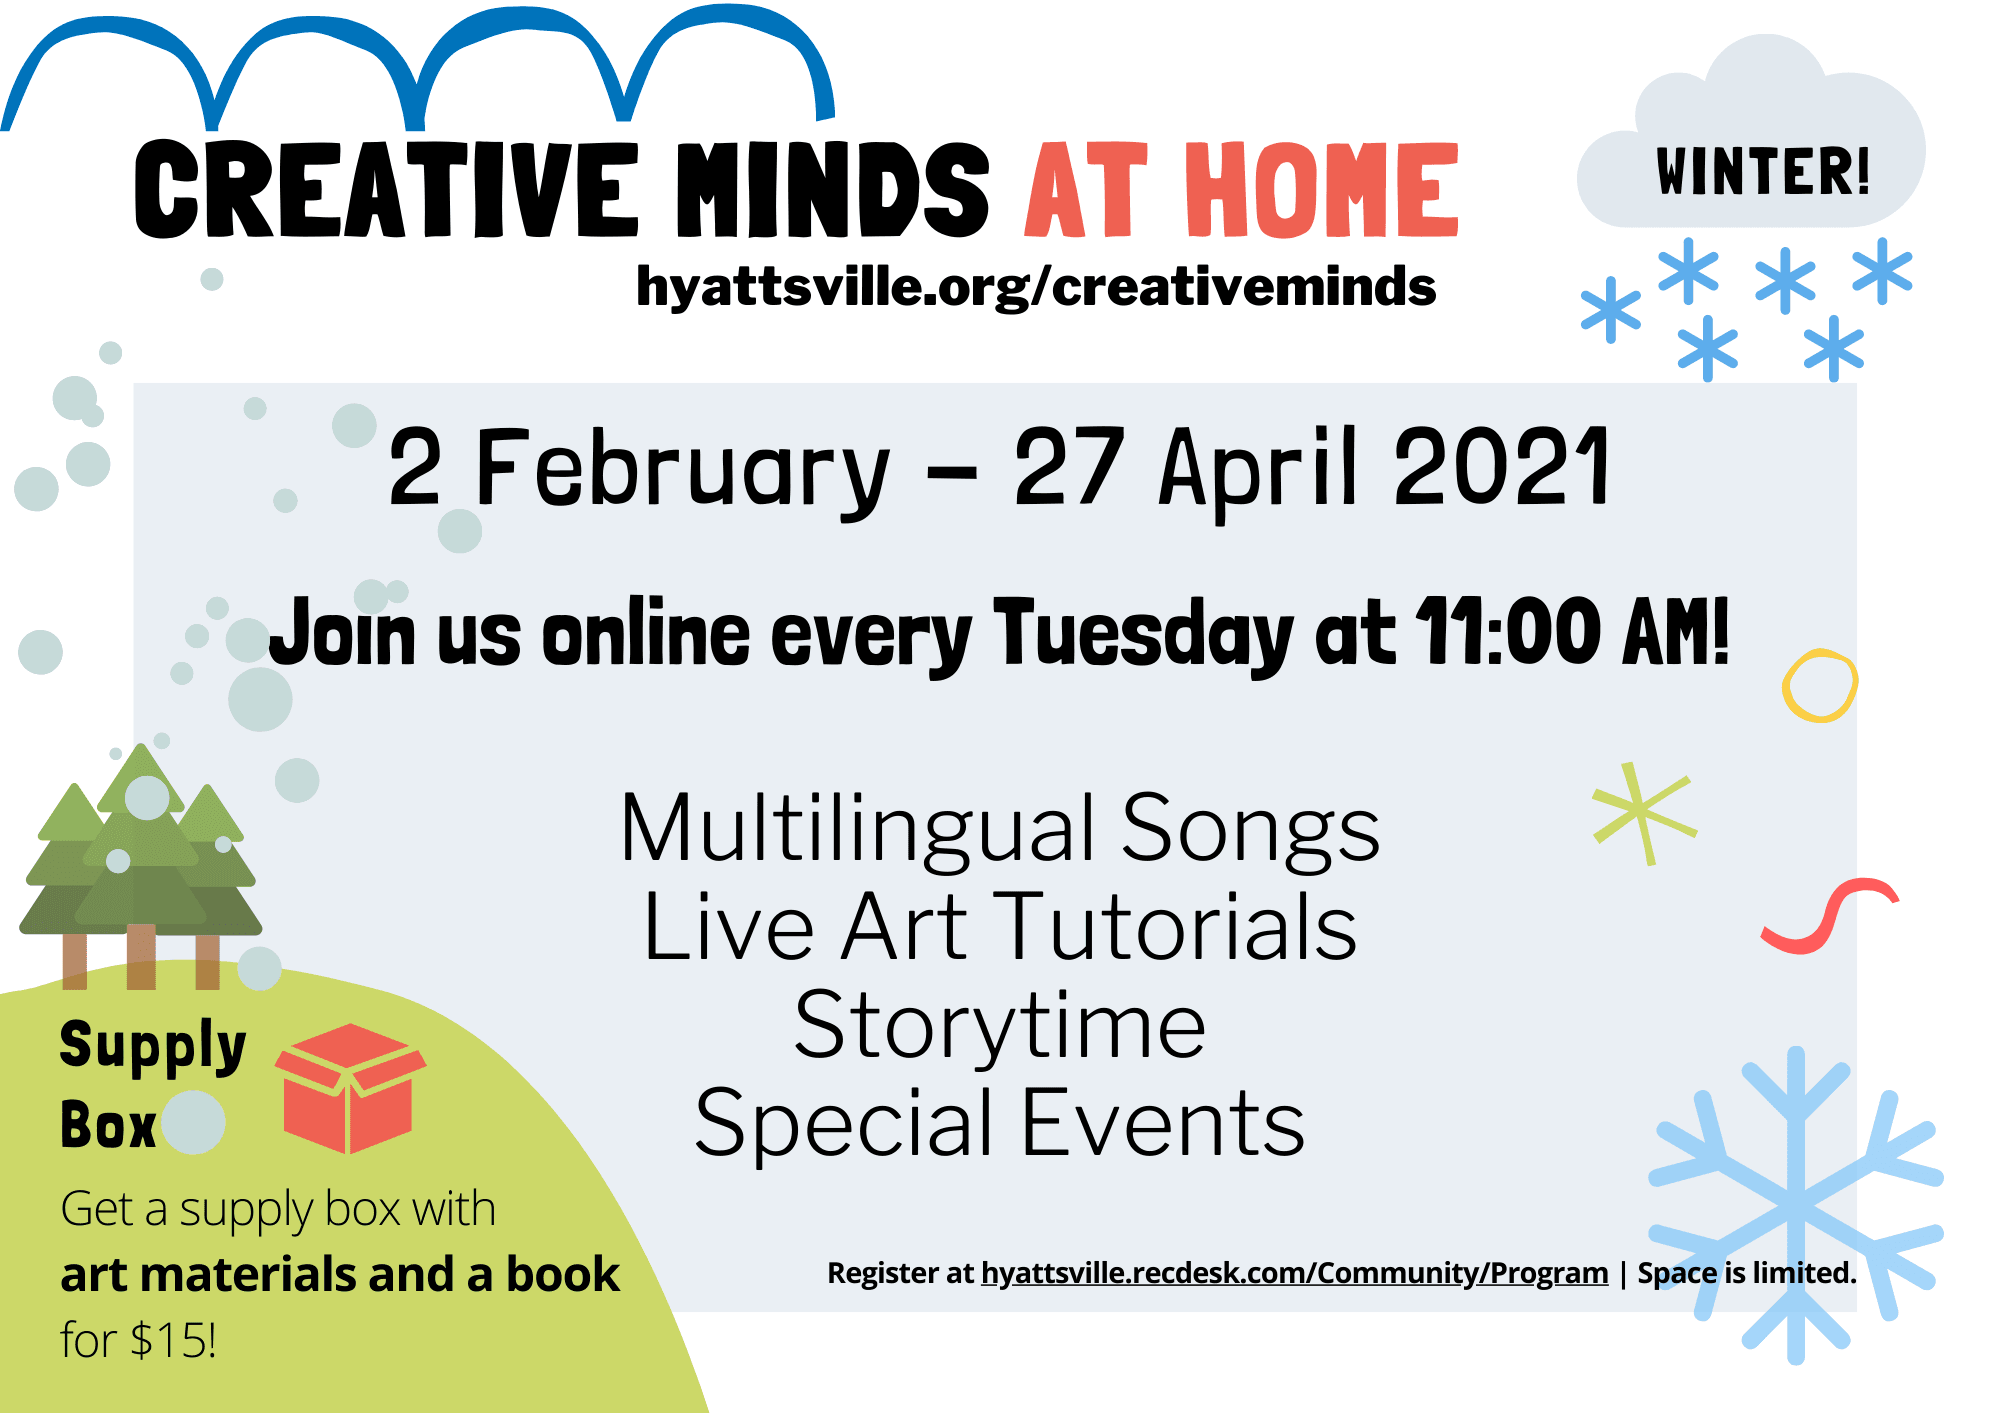 Flyer describing Creative Minds at Home Winter 2021 offerings